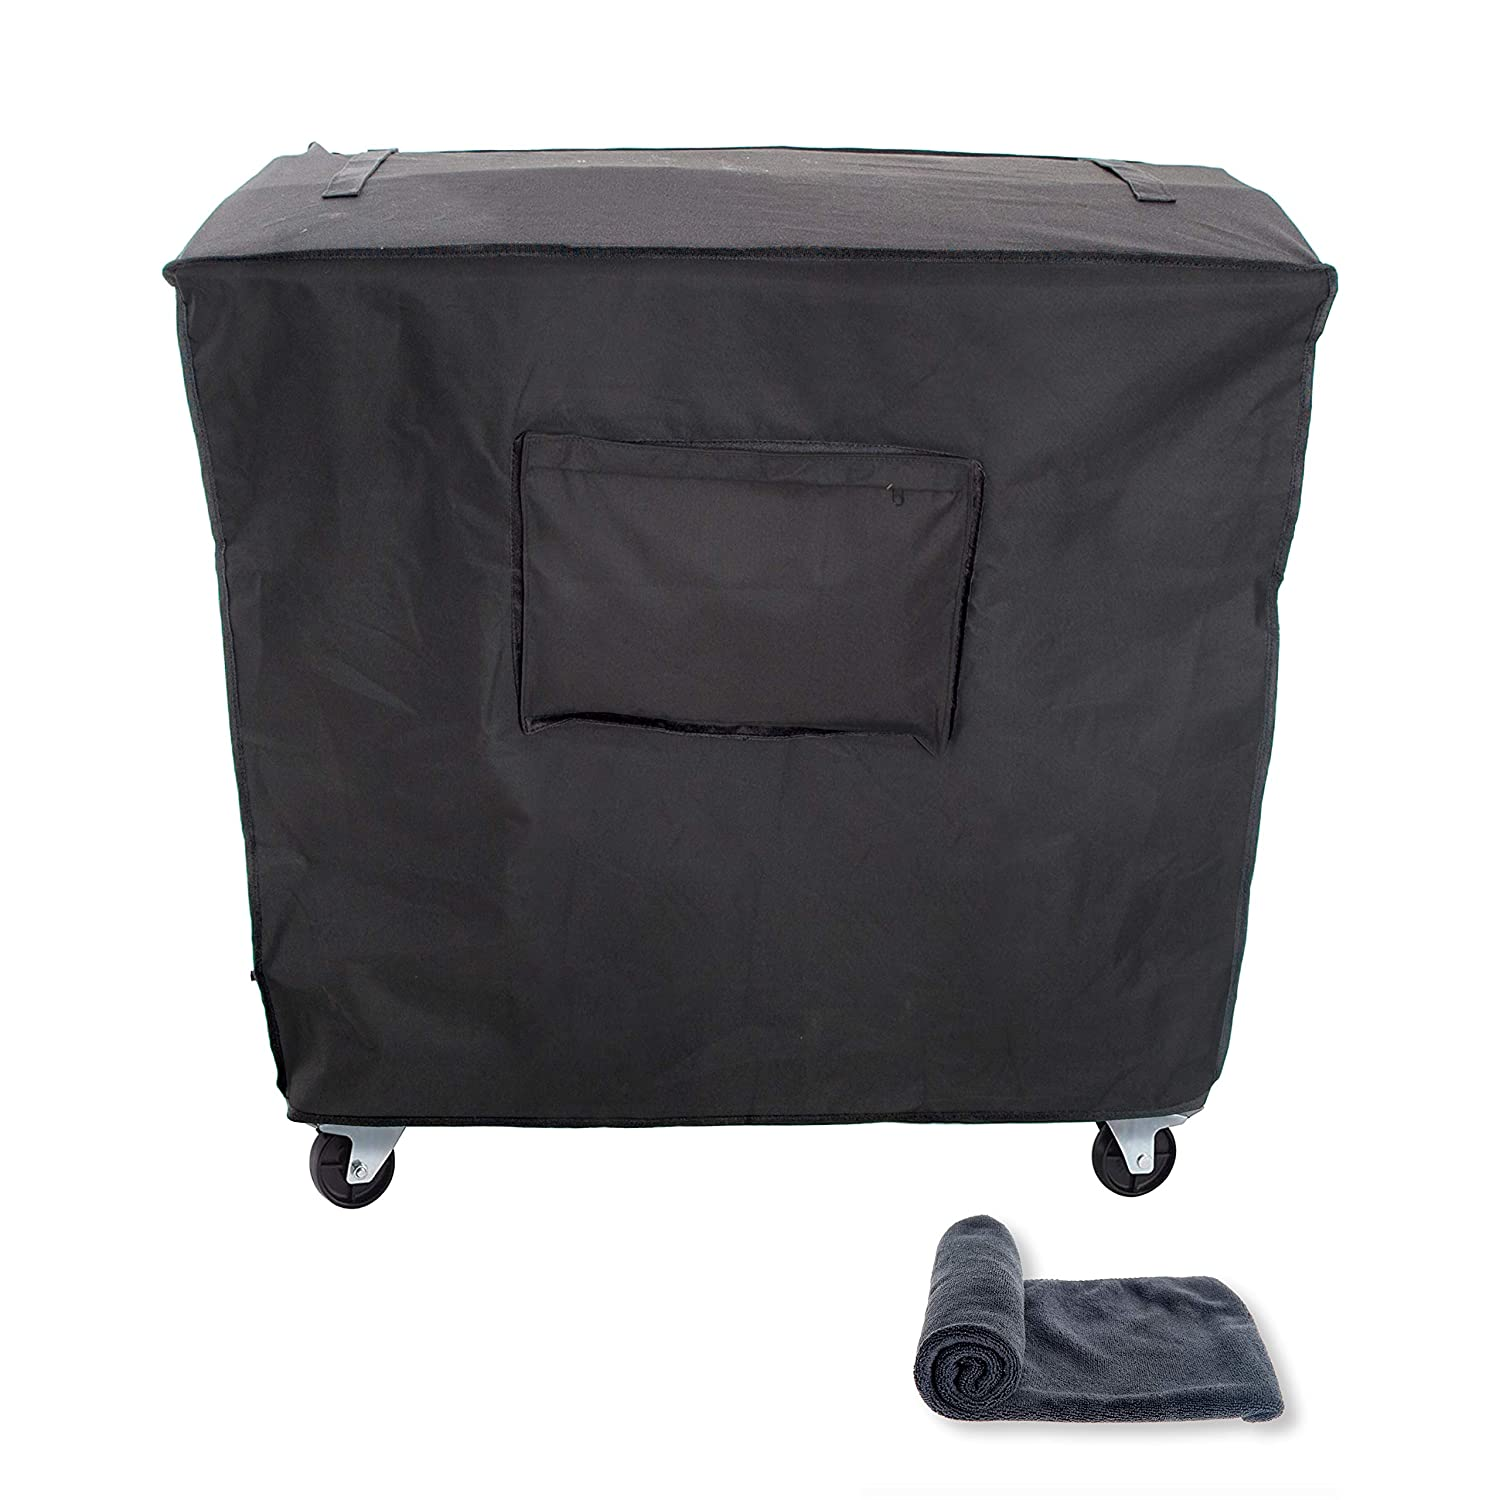 JSD Works Cooler Cart Cover - Fits 80 Quart Rolling Coolers. Waterproof Outdoor Patio Cooler Cover with UV Coating in Black Comes with Microfiber Towel